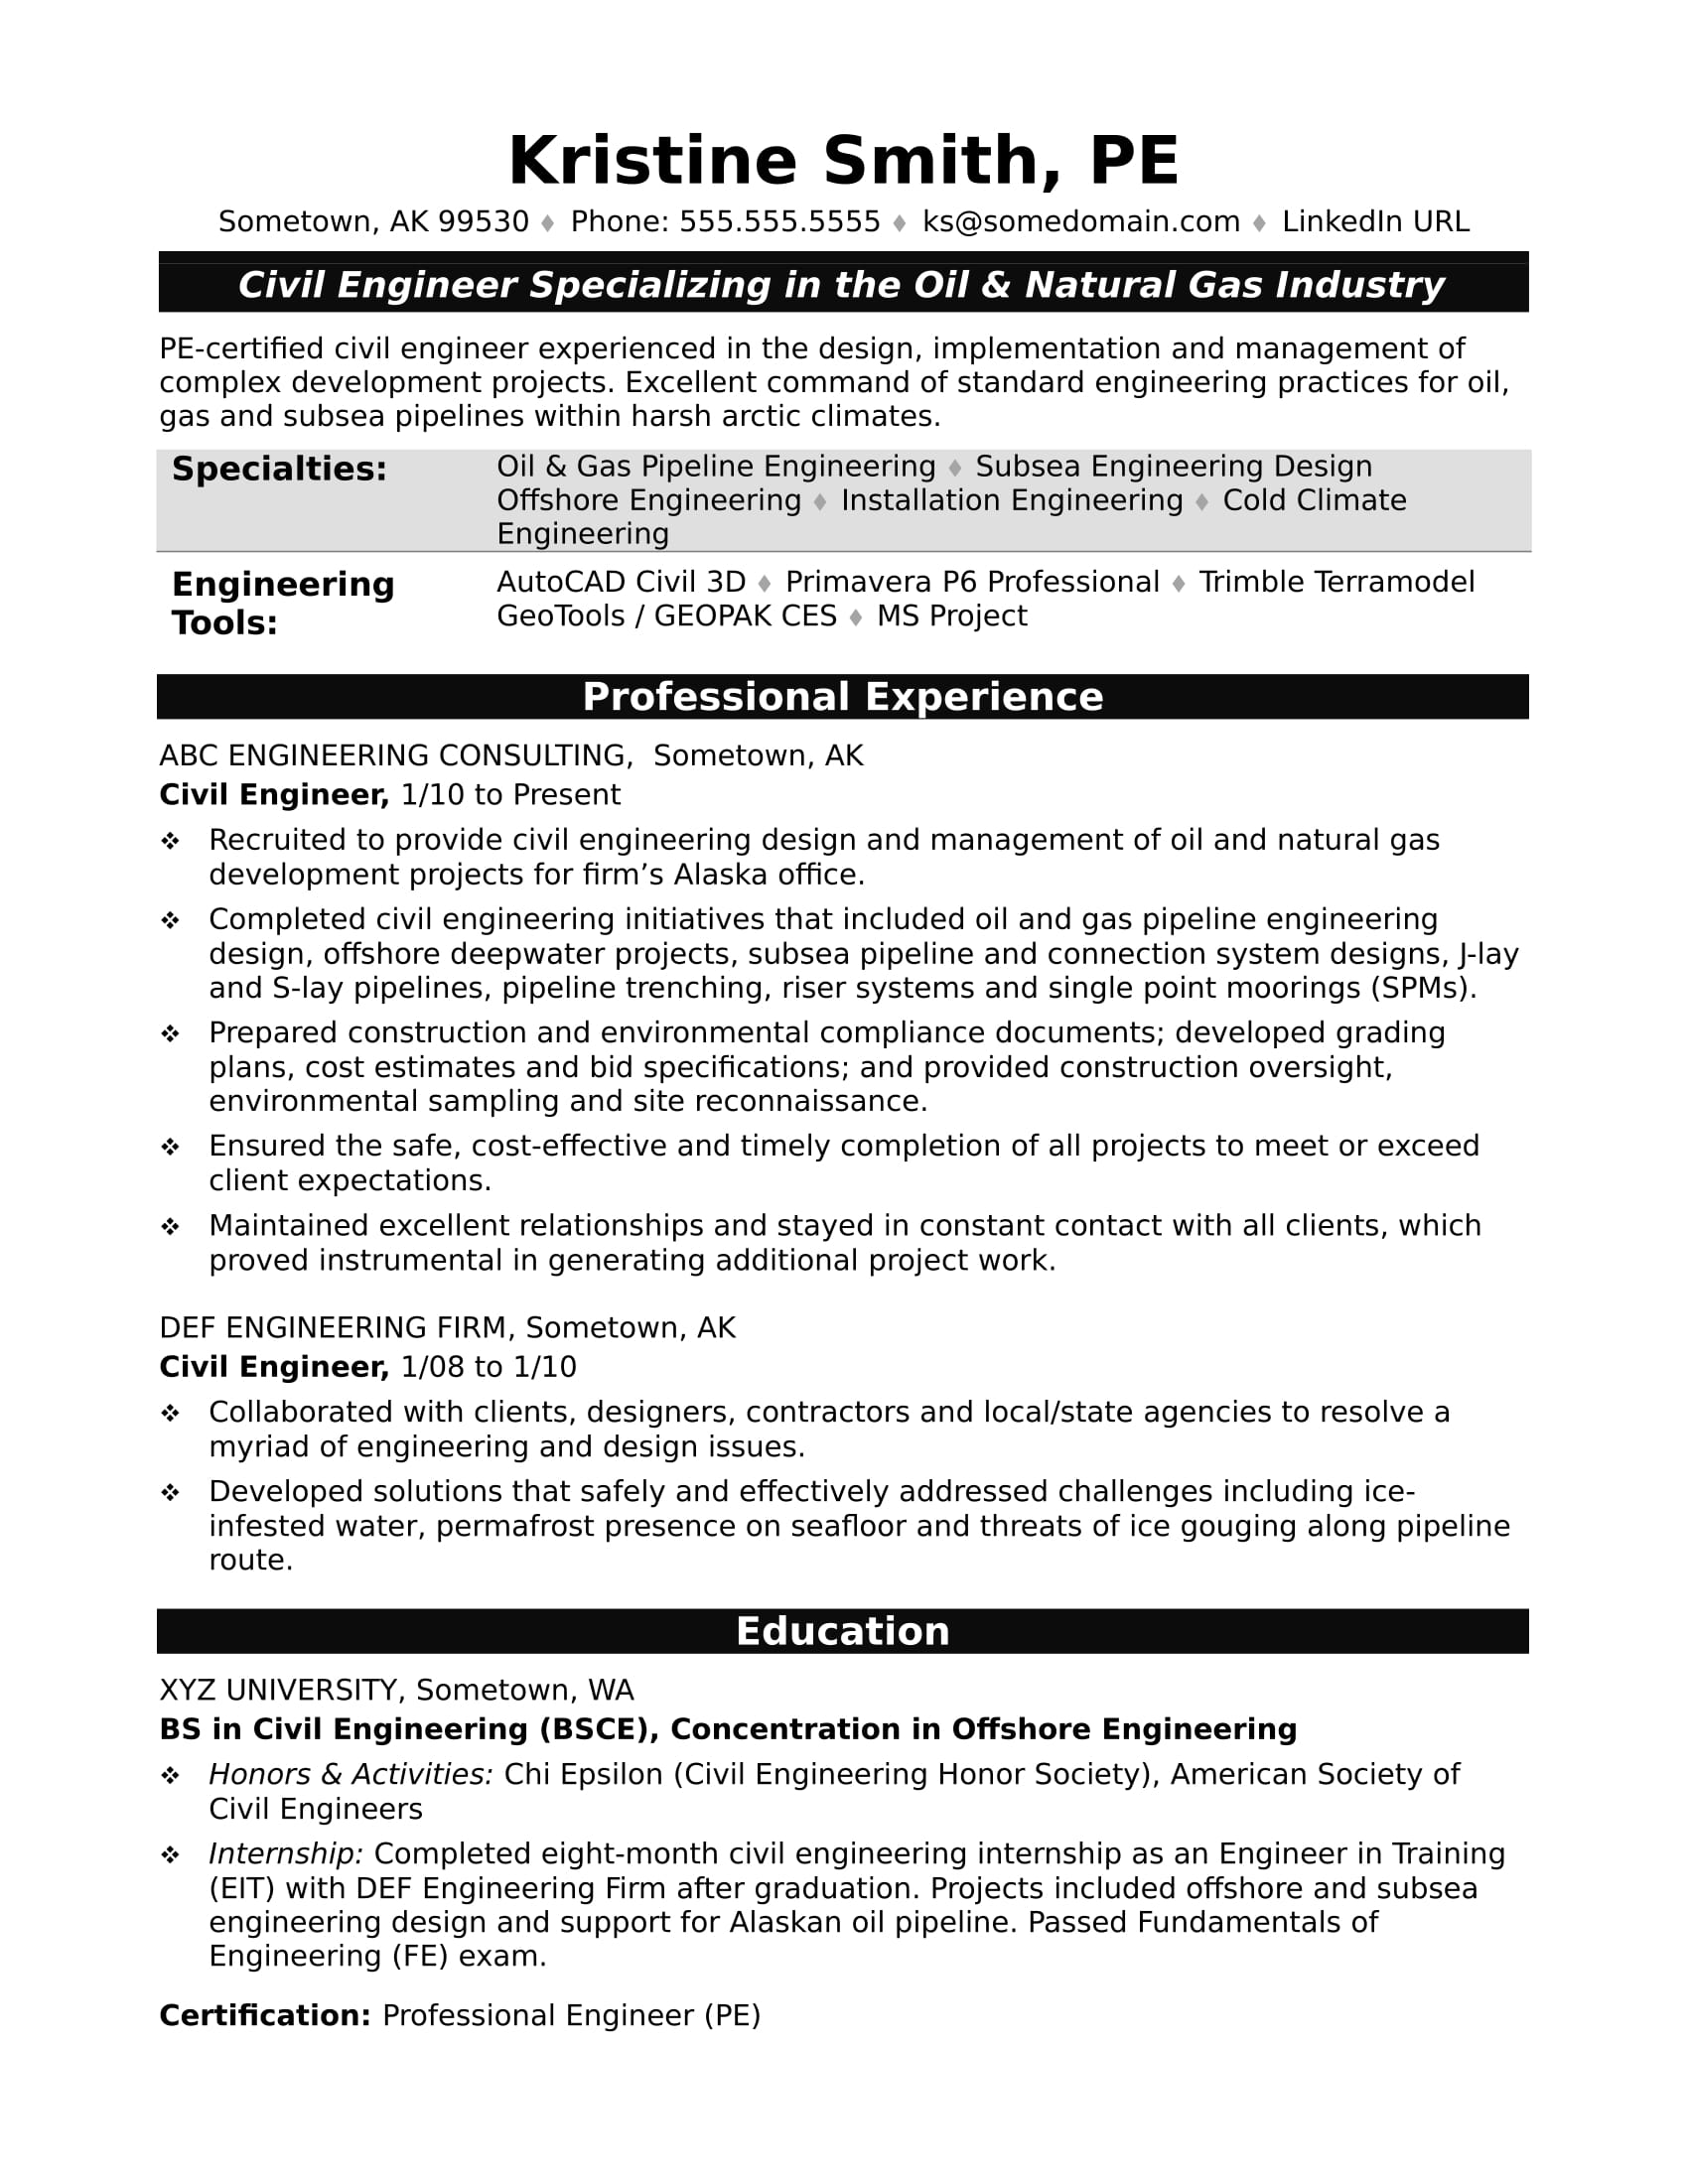 Wonderful Sample Resume For A Midlevel Civil Engineer Regarding Resume Civil Engineer